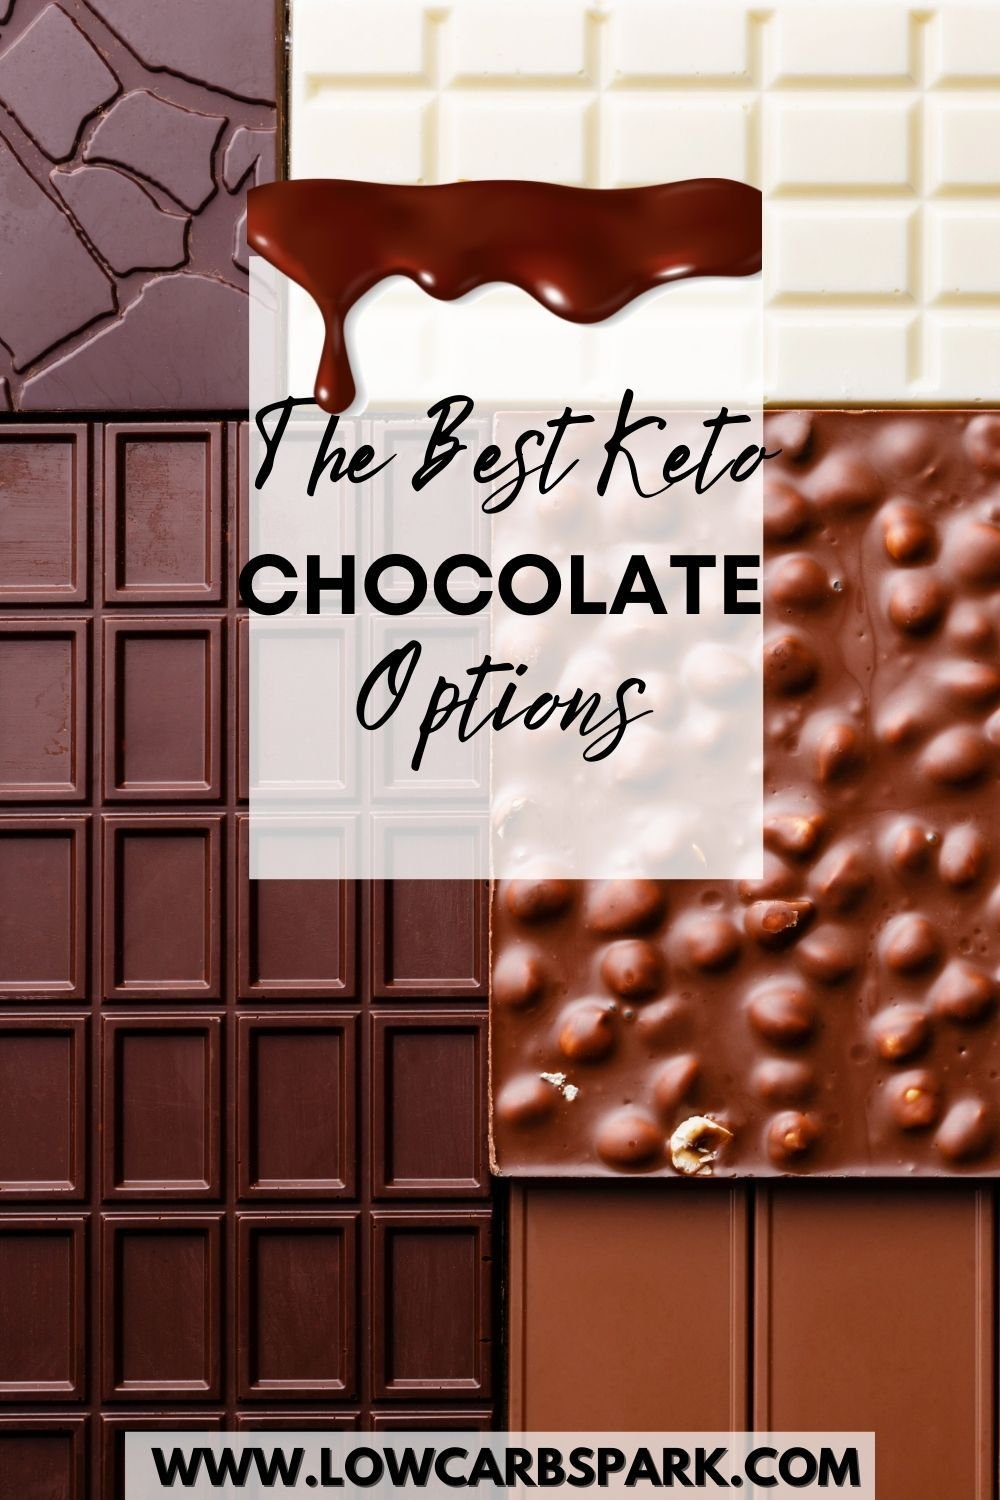 The Best Keto Chocolate - Top 10+ Low Carb Options